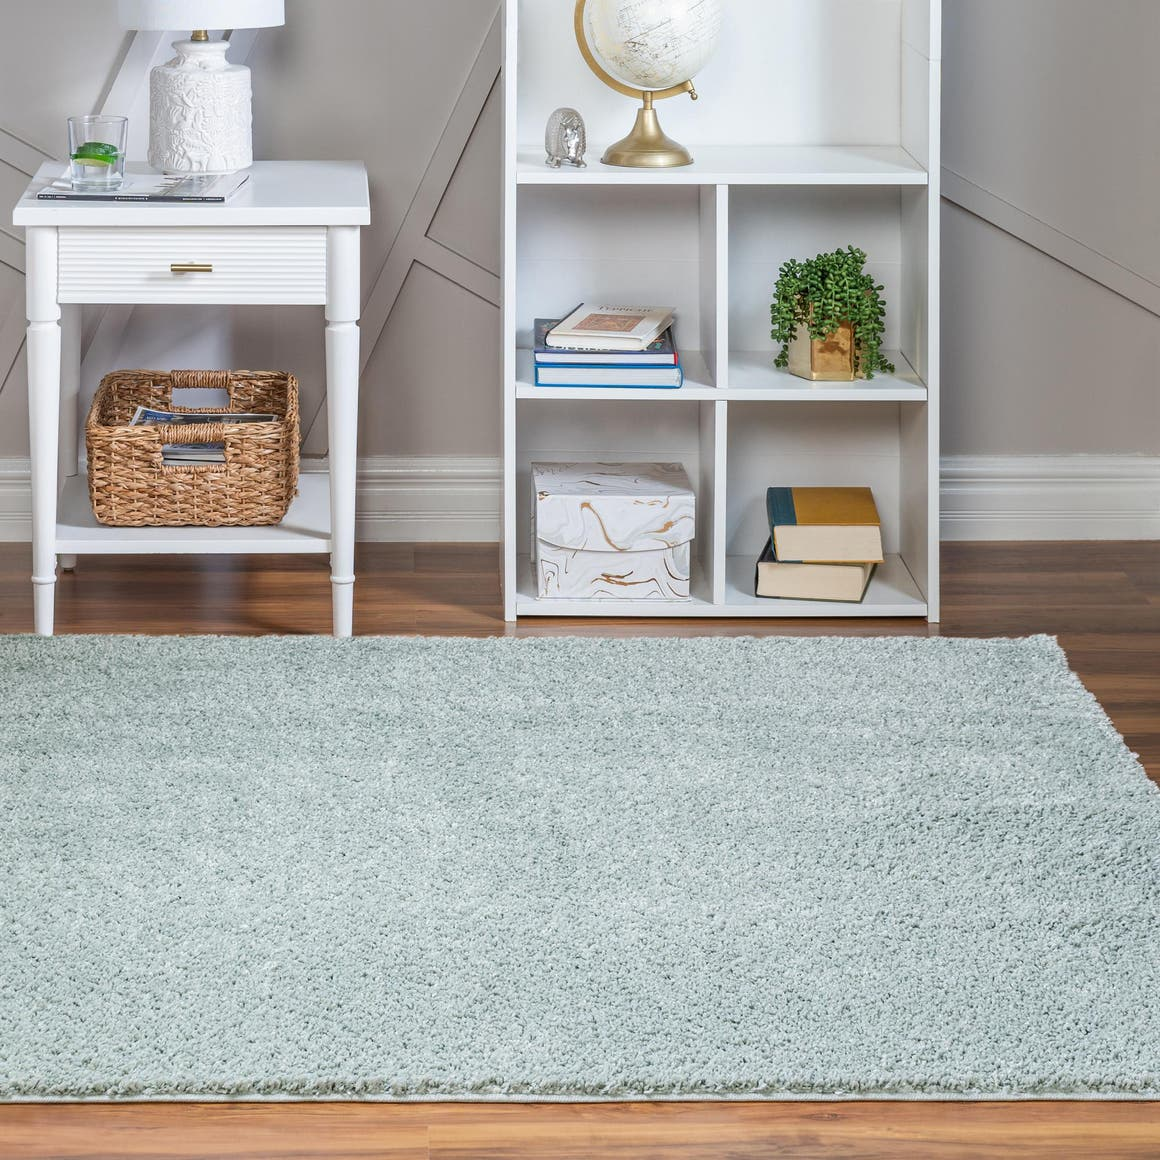 8' x 8' Soft Solid Shag Square Rug main image